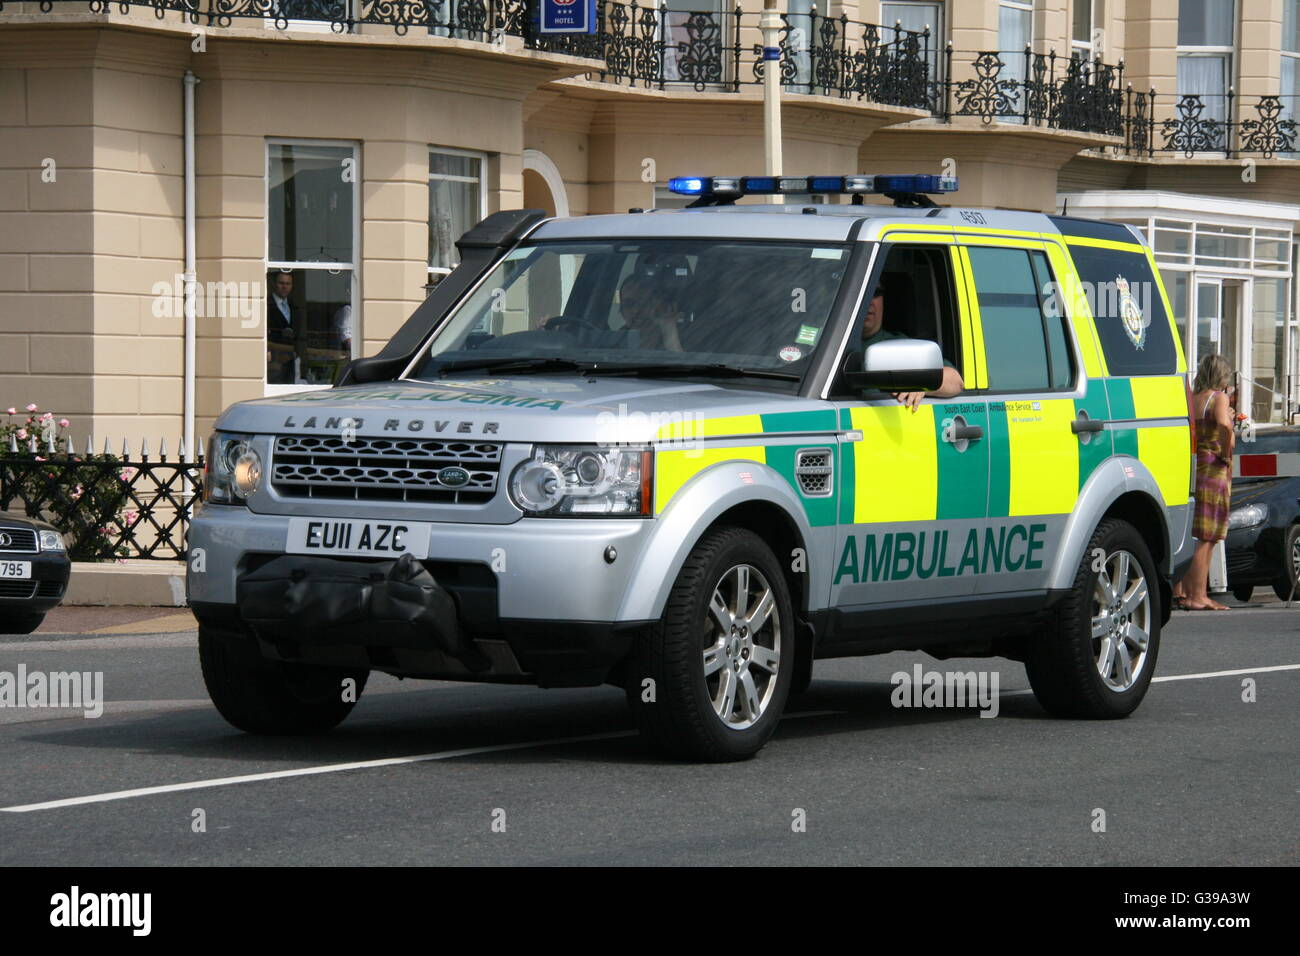 south east coast ambulance service stock photos south east coast south east coast ambulance service range rover paramedic first response vehicle stock image